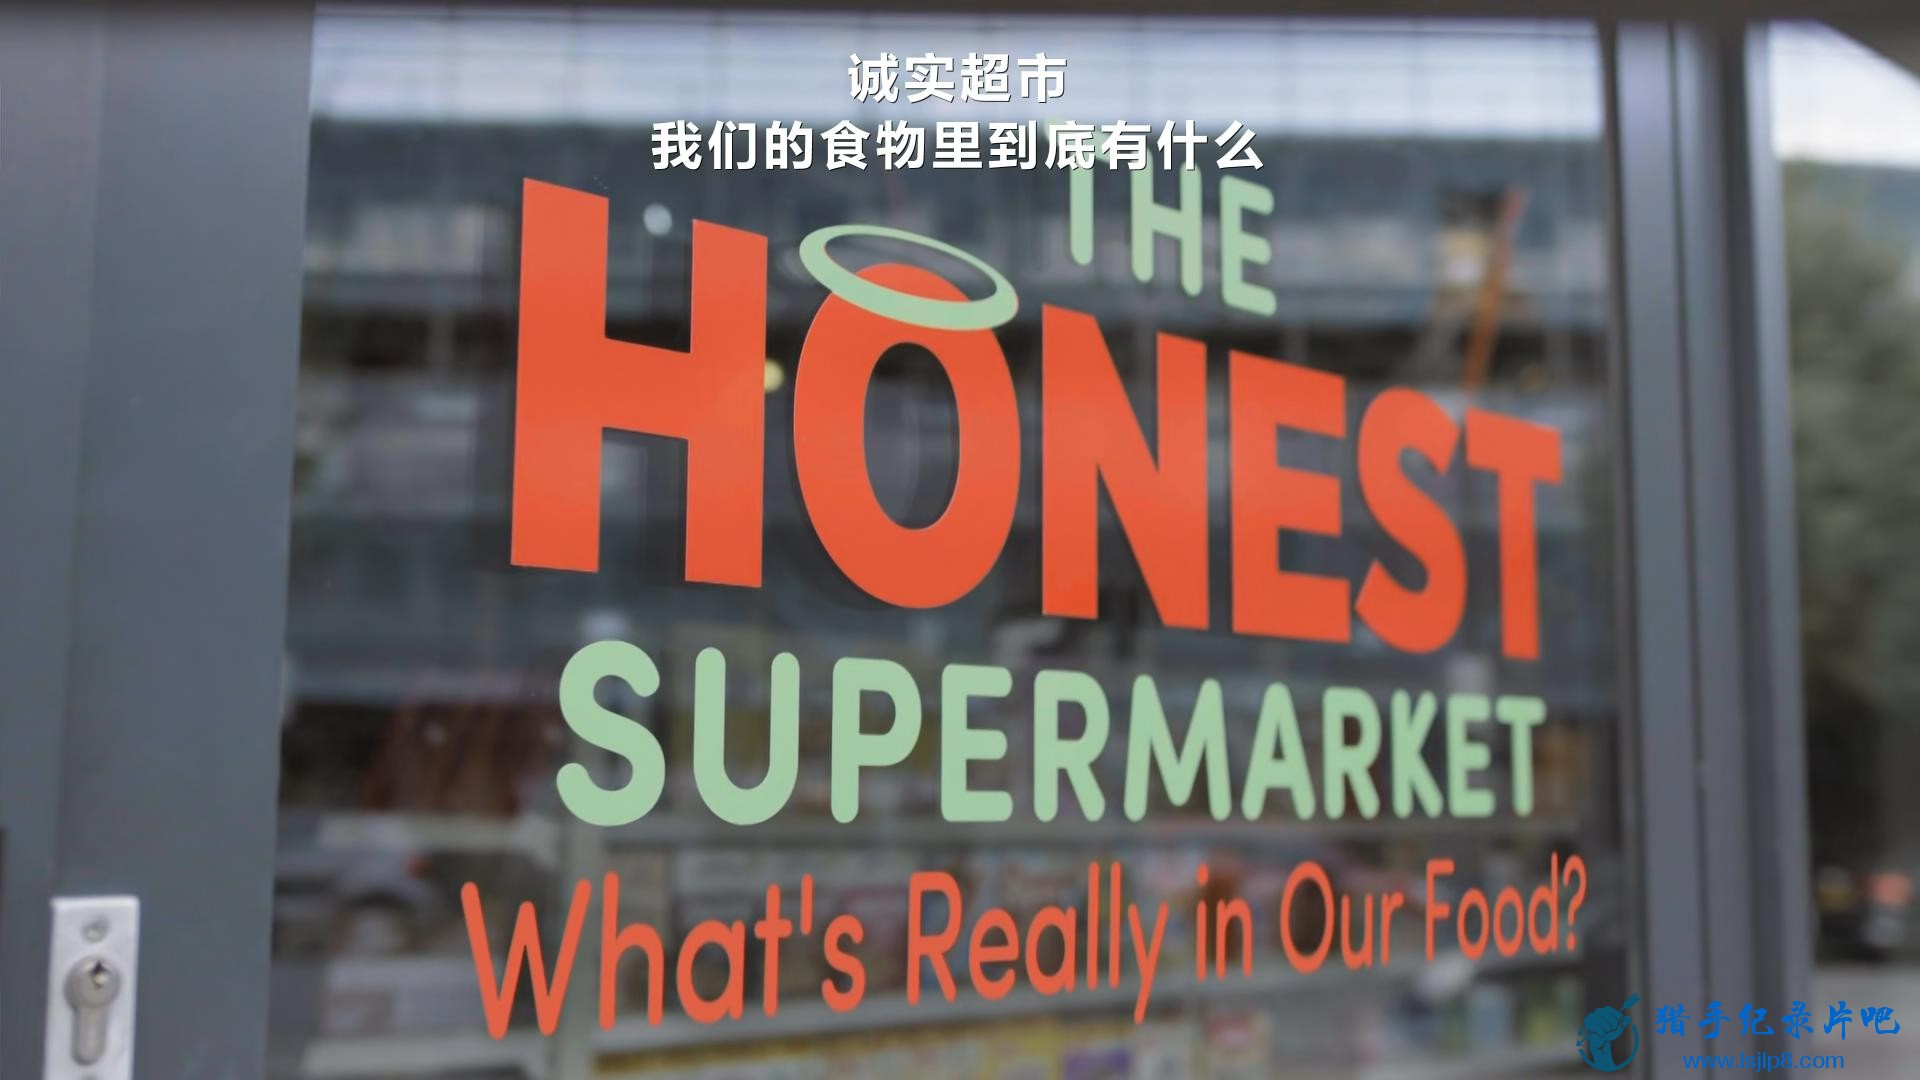 BBC.Horizon.2019.The.Honest.Supermarket.Whats.Really.in.Our.Food.1080p.HDTV.x265.jpg